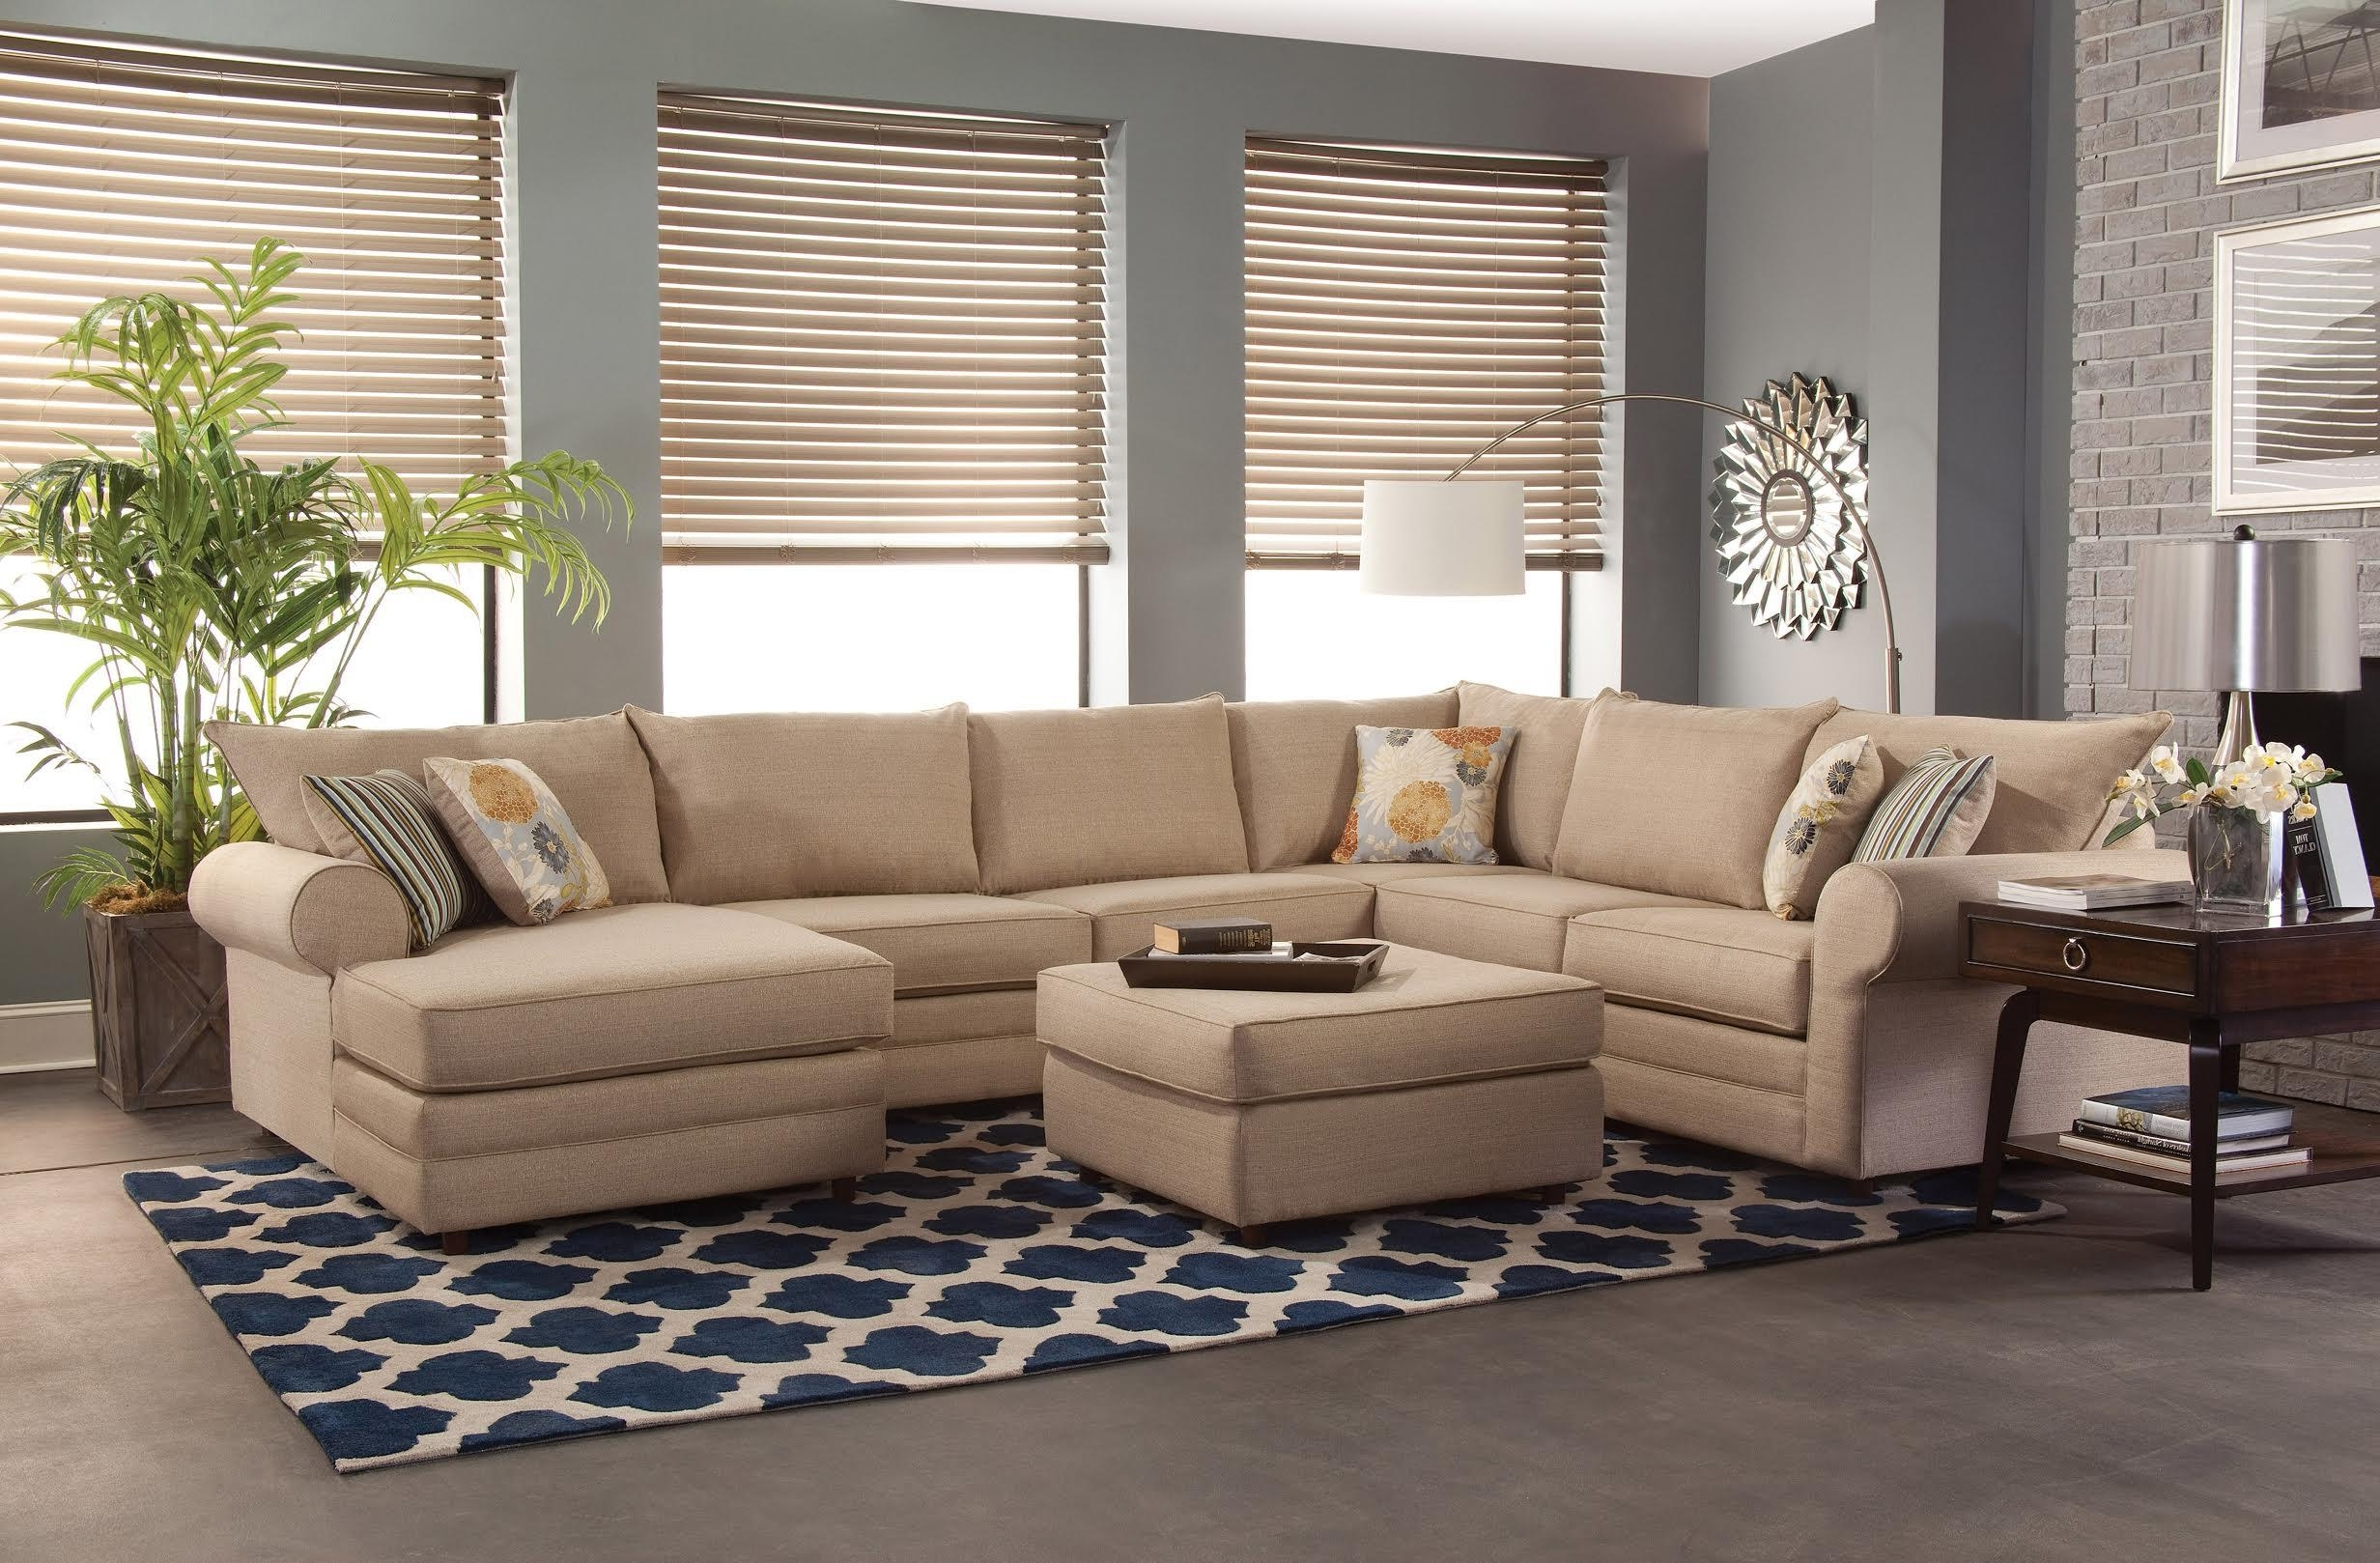 Recent Sofa : Magnificent Large Sectional Sofa With Chaise Reclining For 10x8 Sectional Sofas (View 20 of 20)